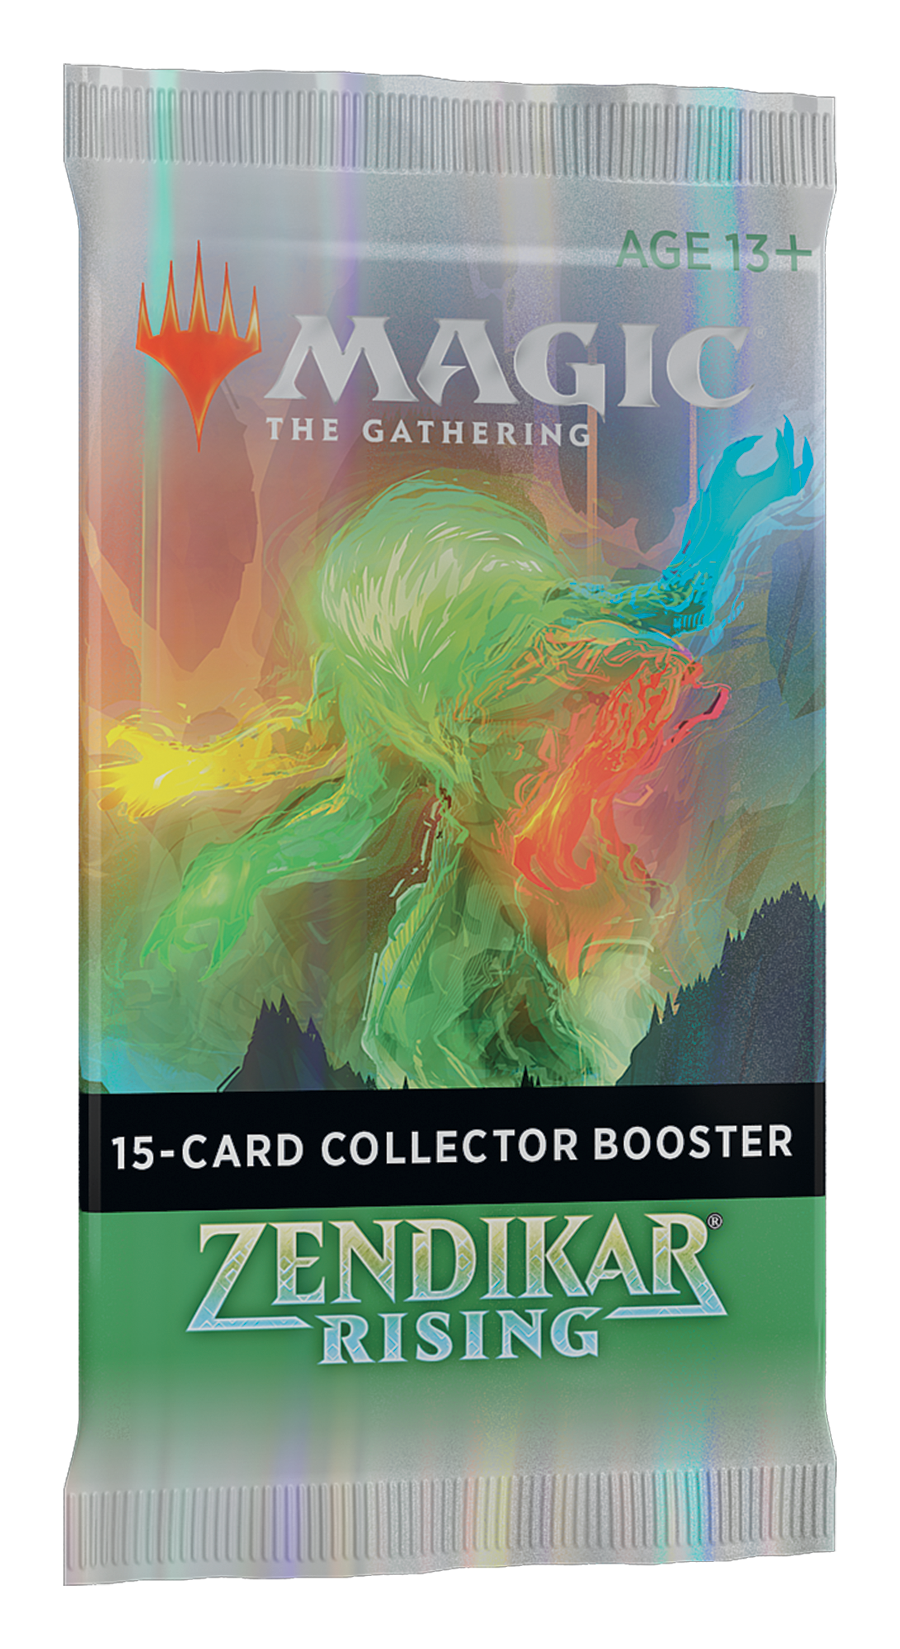 Zendikar Rising Collector Booster | Red Claw Gaming